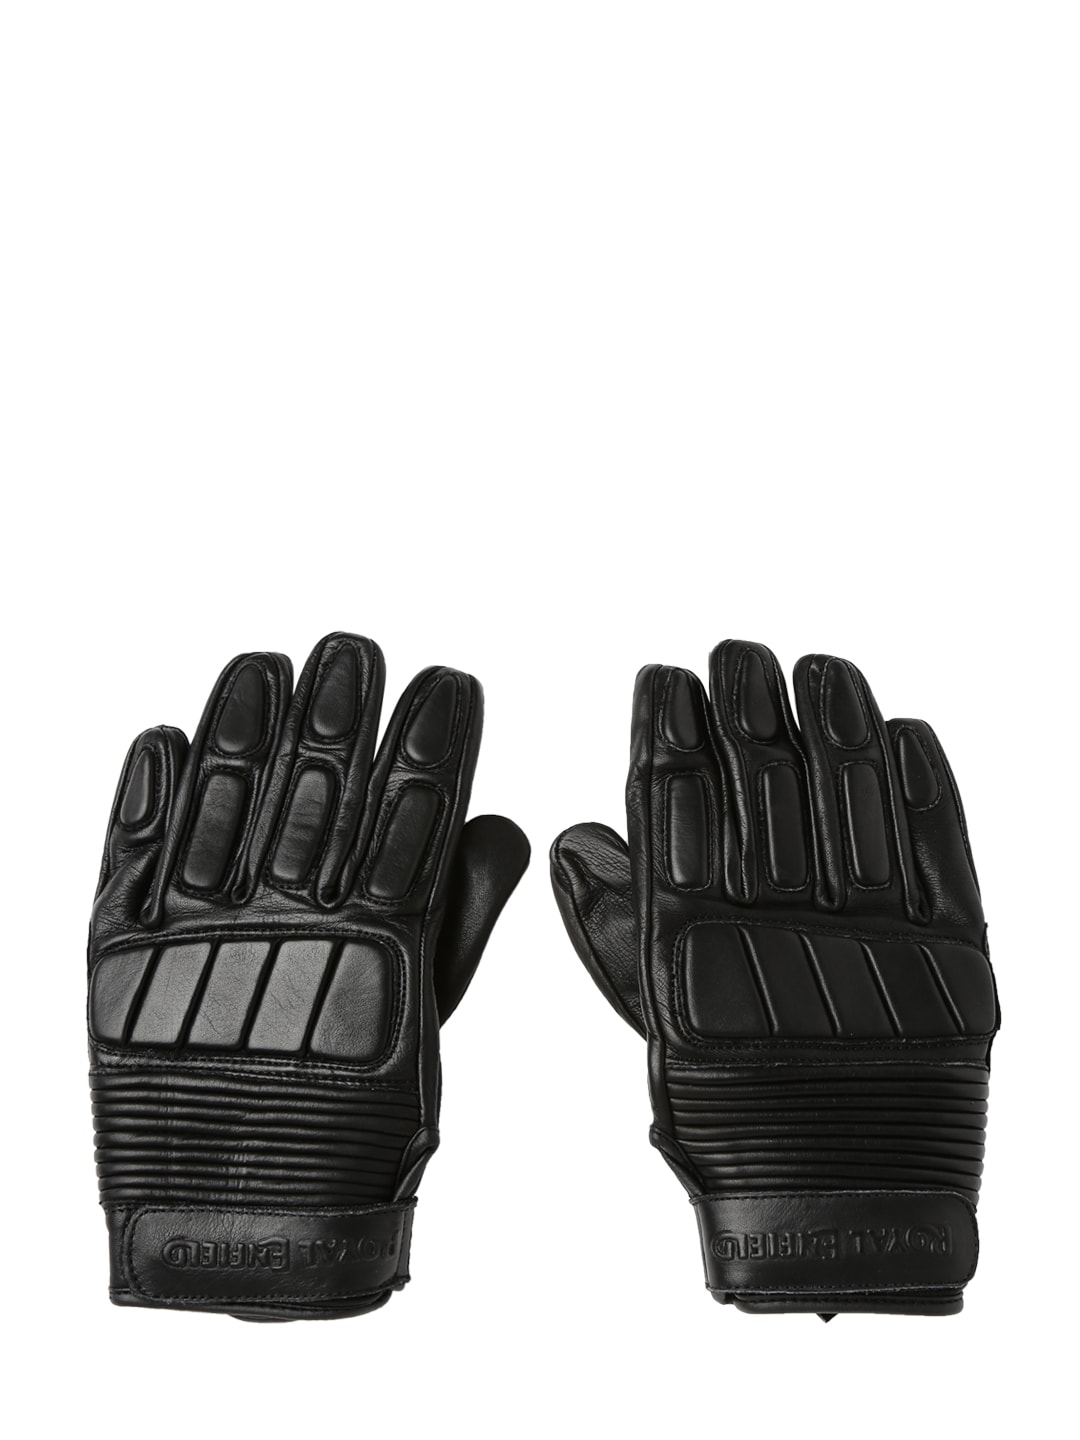 Driving gloves online shopping india - Driving Gloves Online Shopping India 31